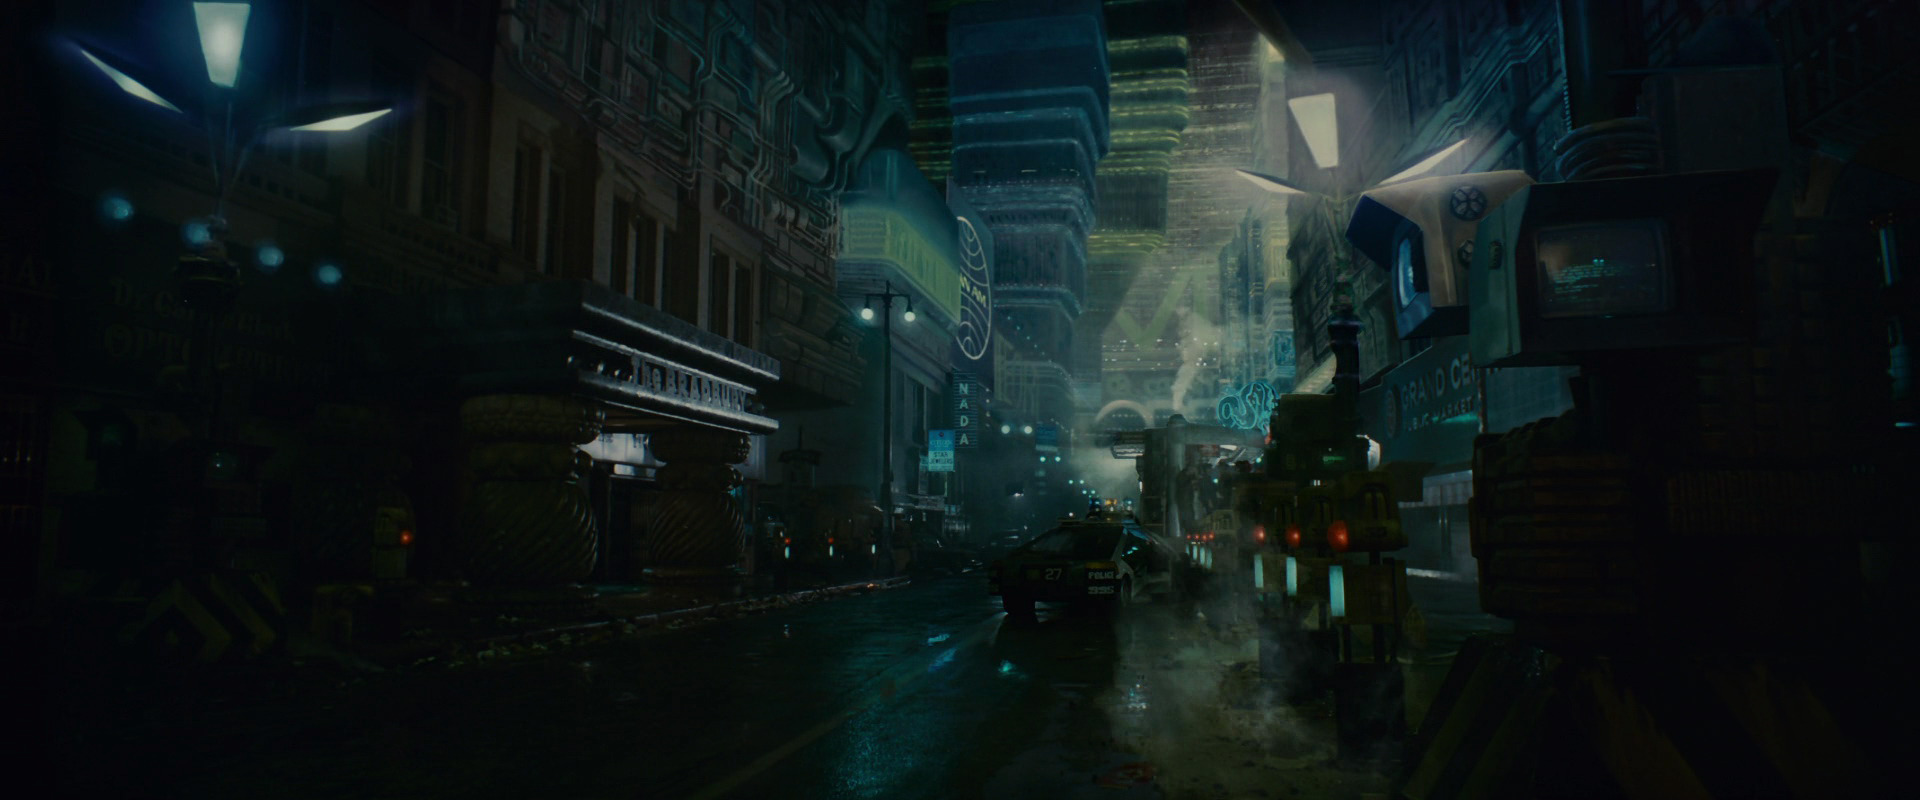 Blade Runner 2 Just Hired The Perfect Cinematographer ... - photo#19